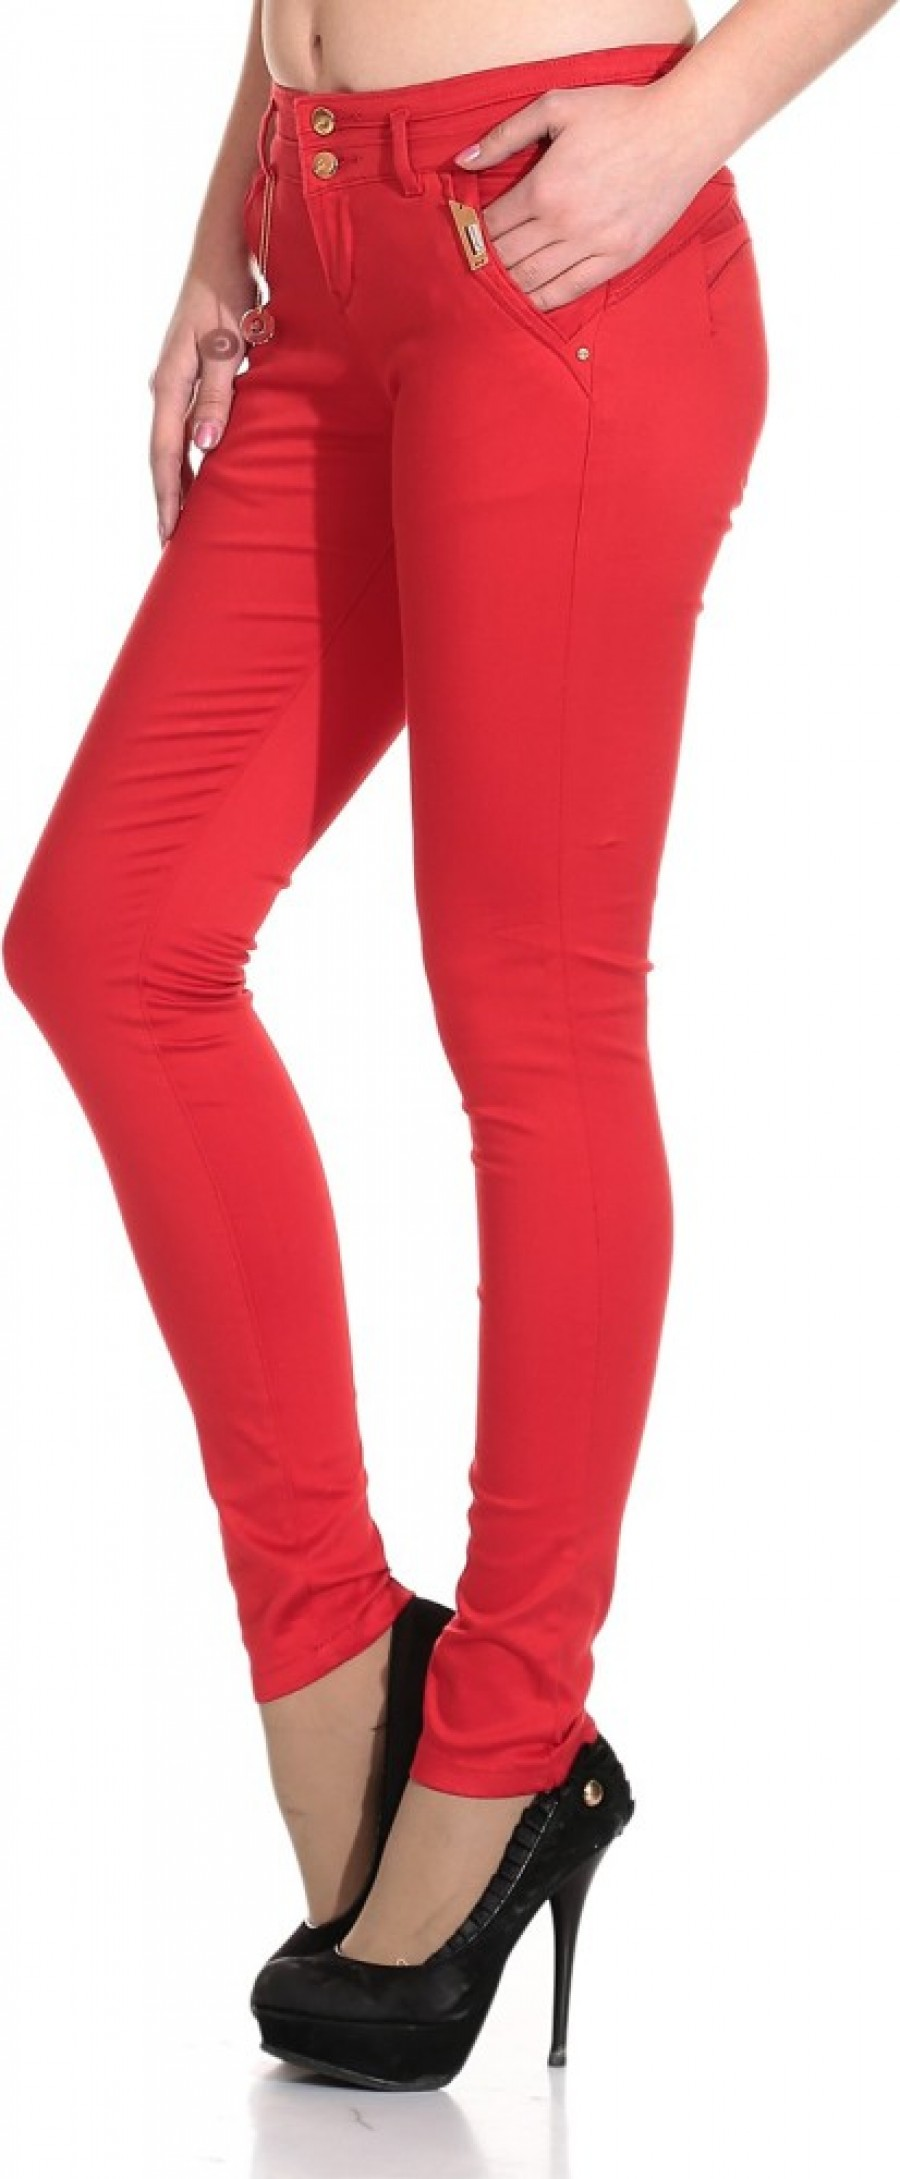 Buy See Coral Slim Fit Women Red Jeans Online